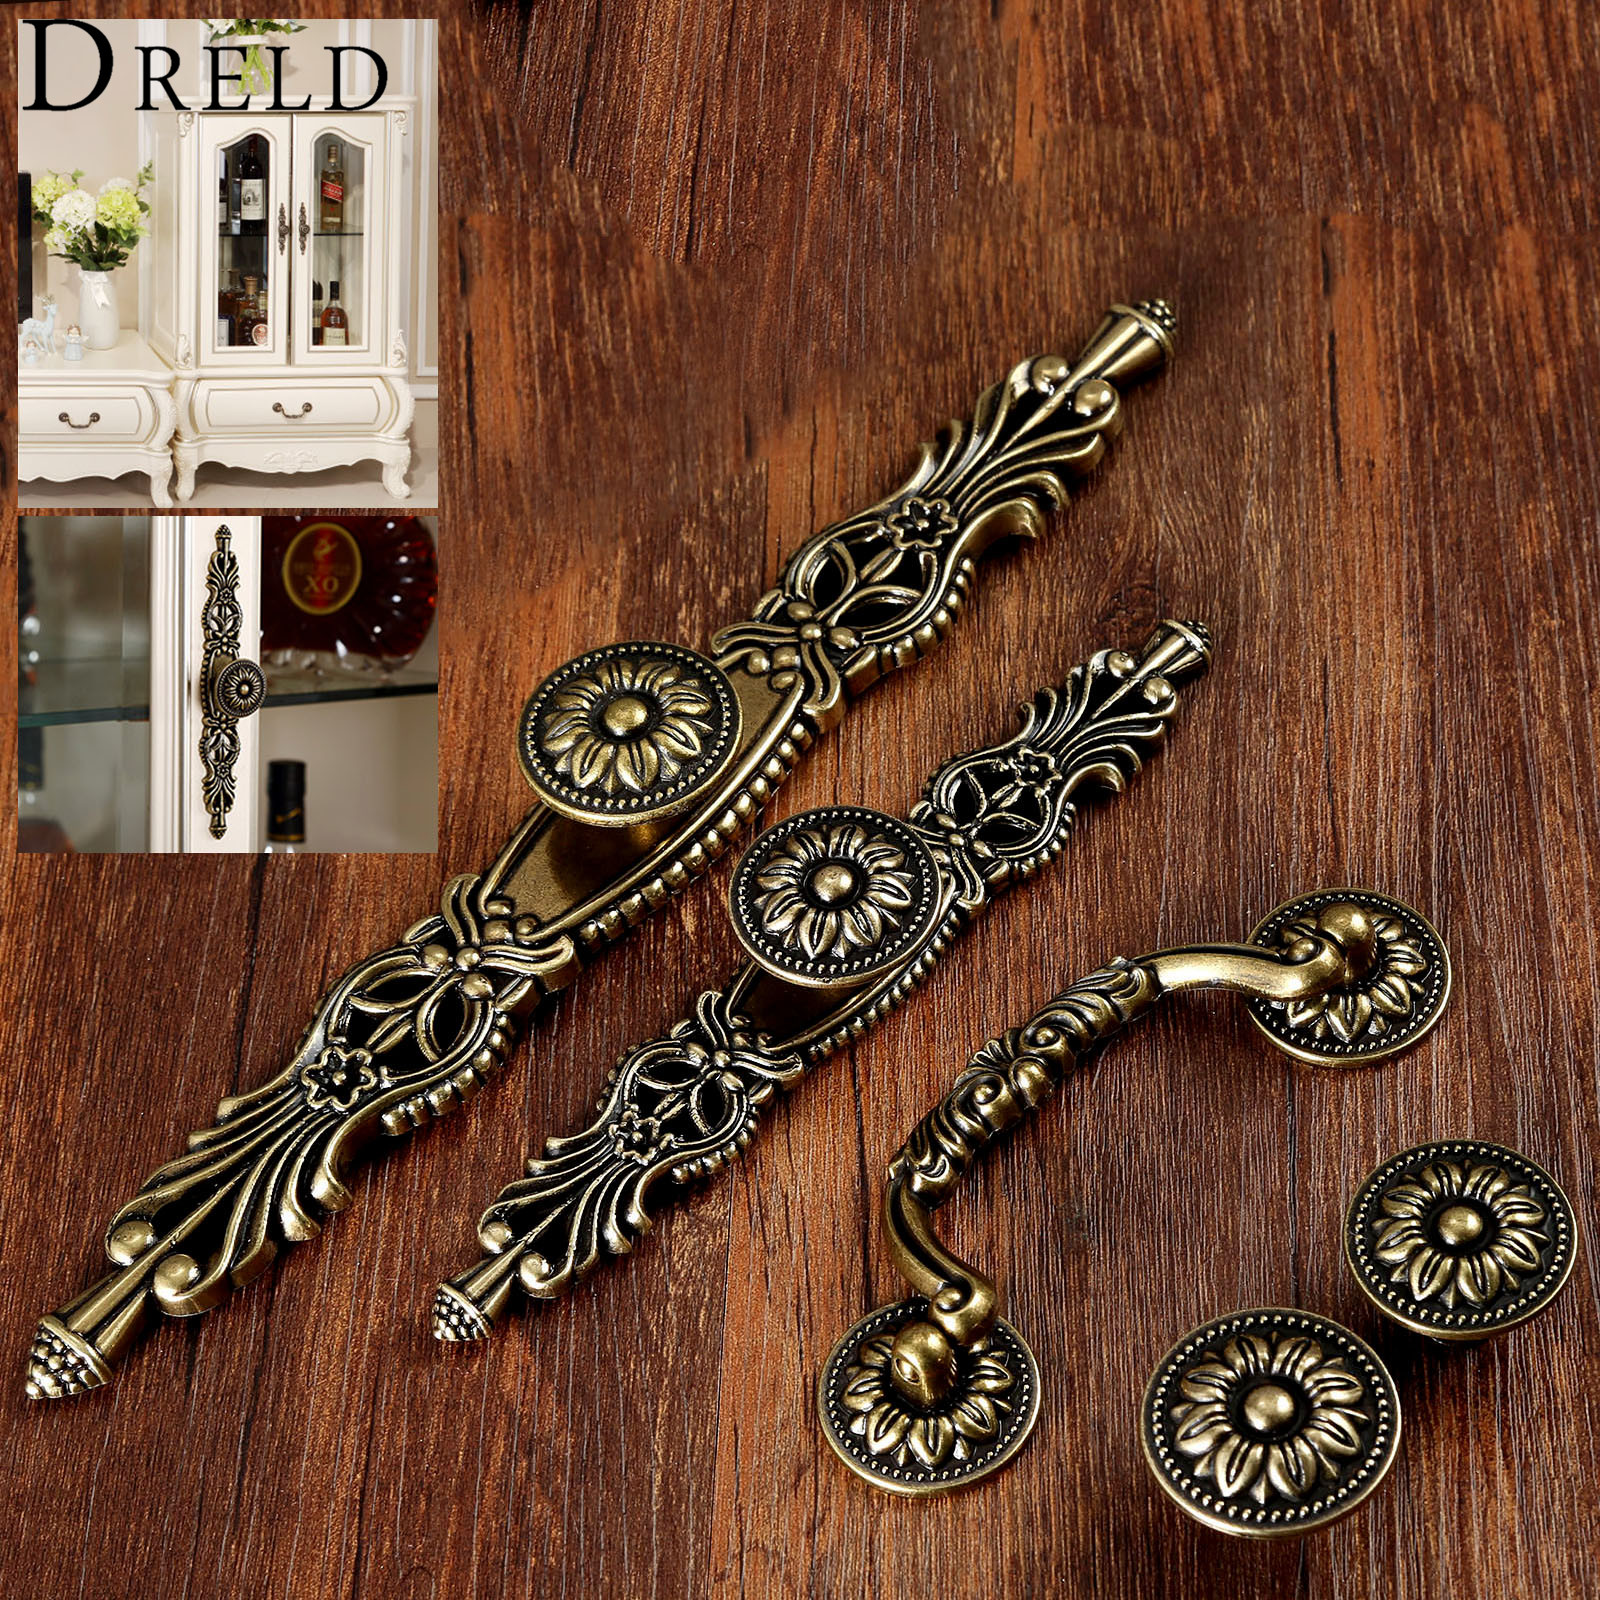 Dreld Antique Furniture Handle Vintage Cabinet Knobs And